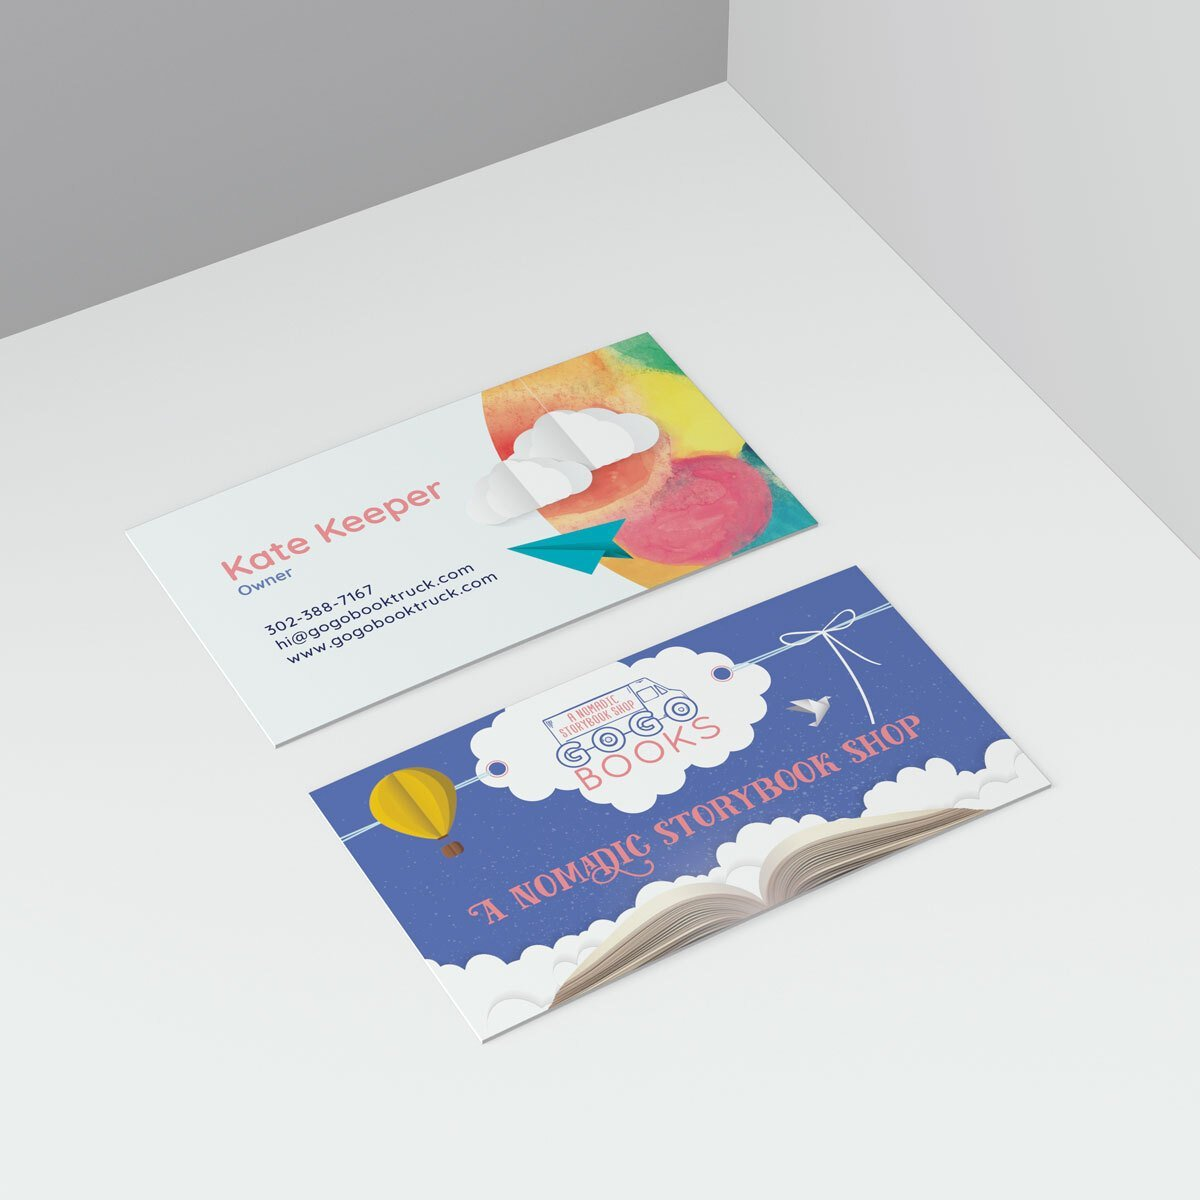 A Business Card design created by BrandSwan for Michelle D McCann